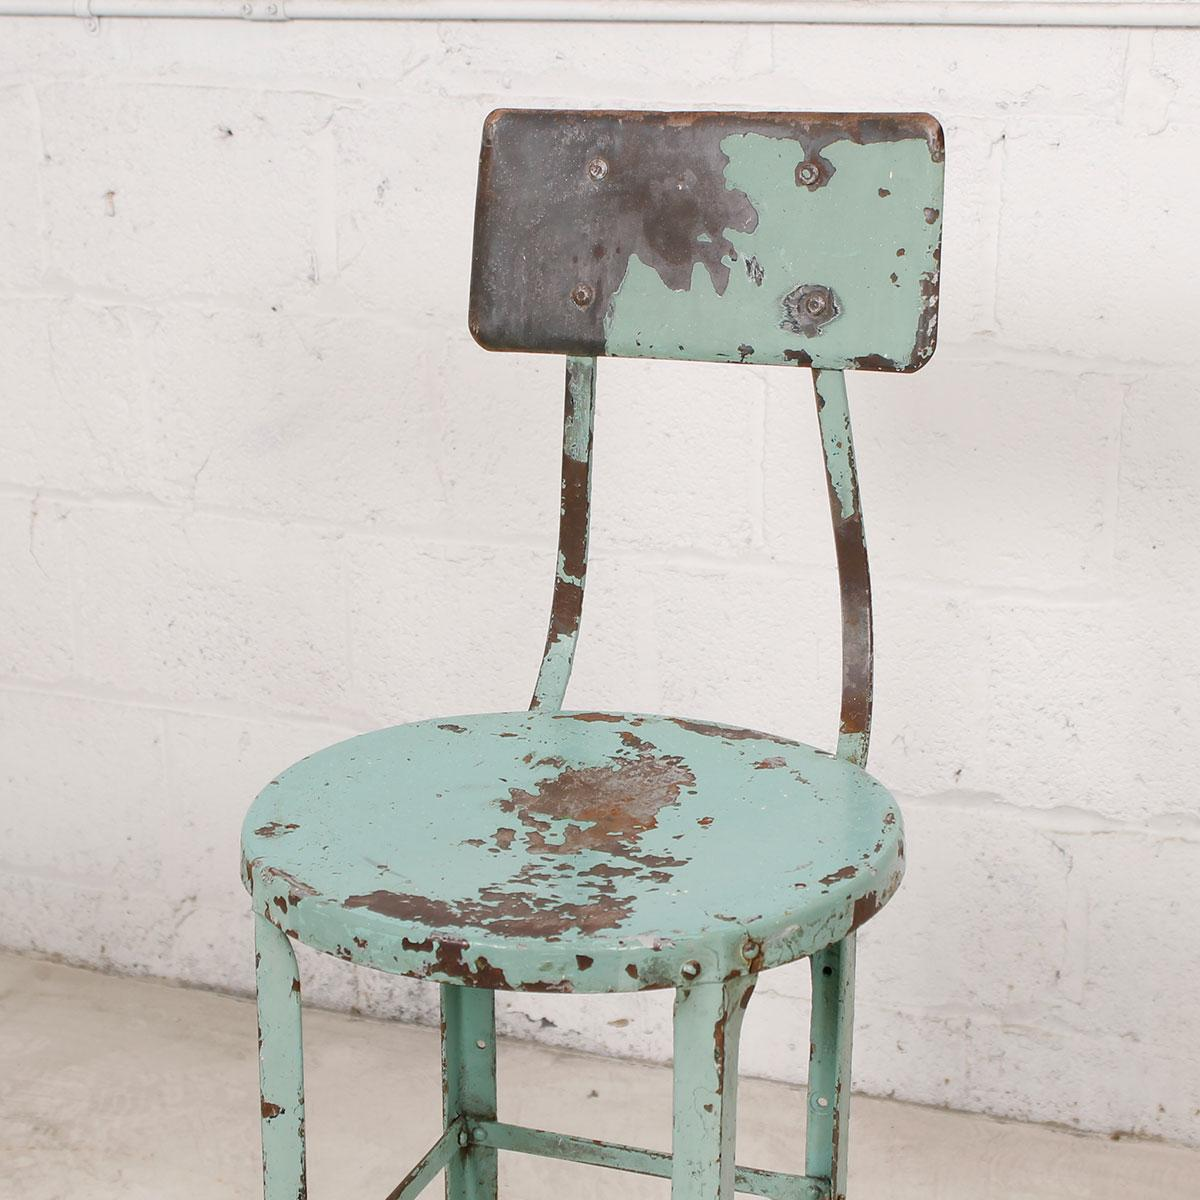 Vintage Industrial Rustic Green Bar Stool Chairish